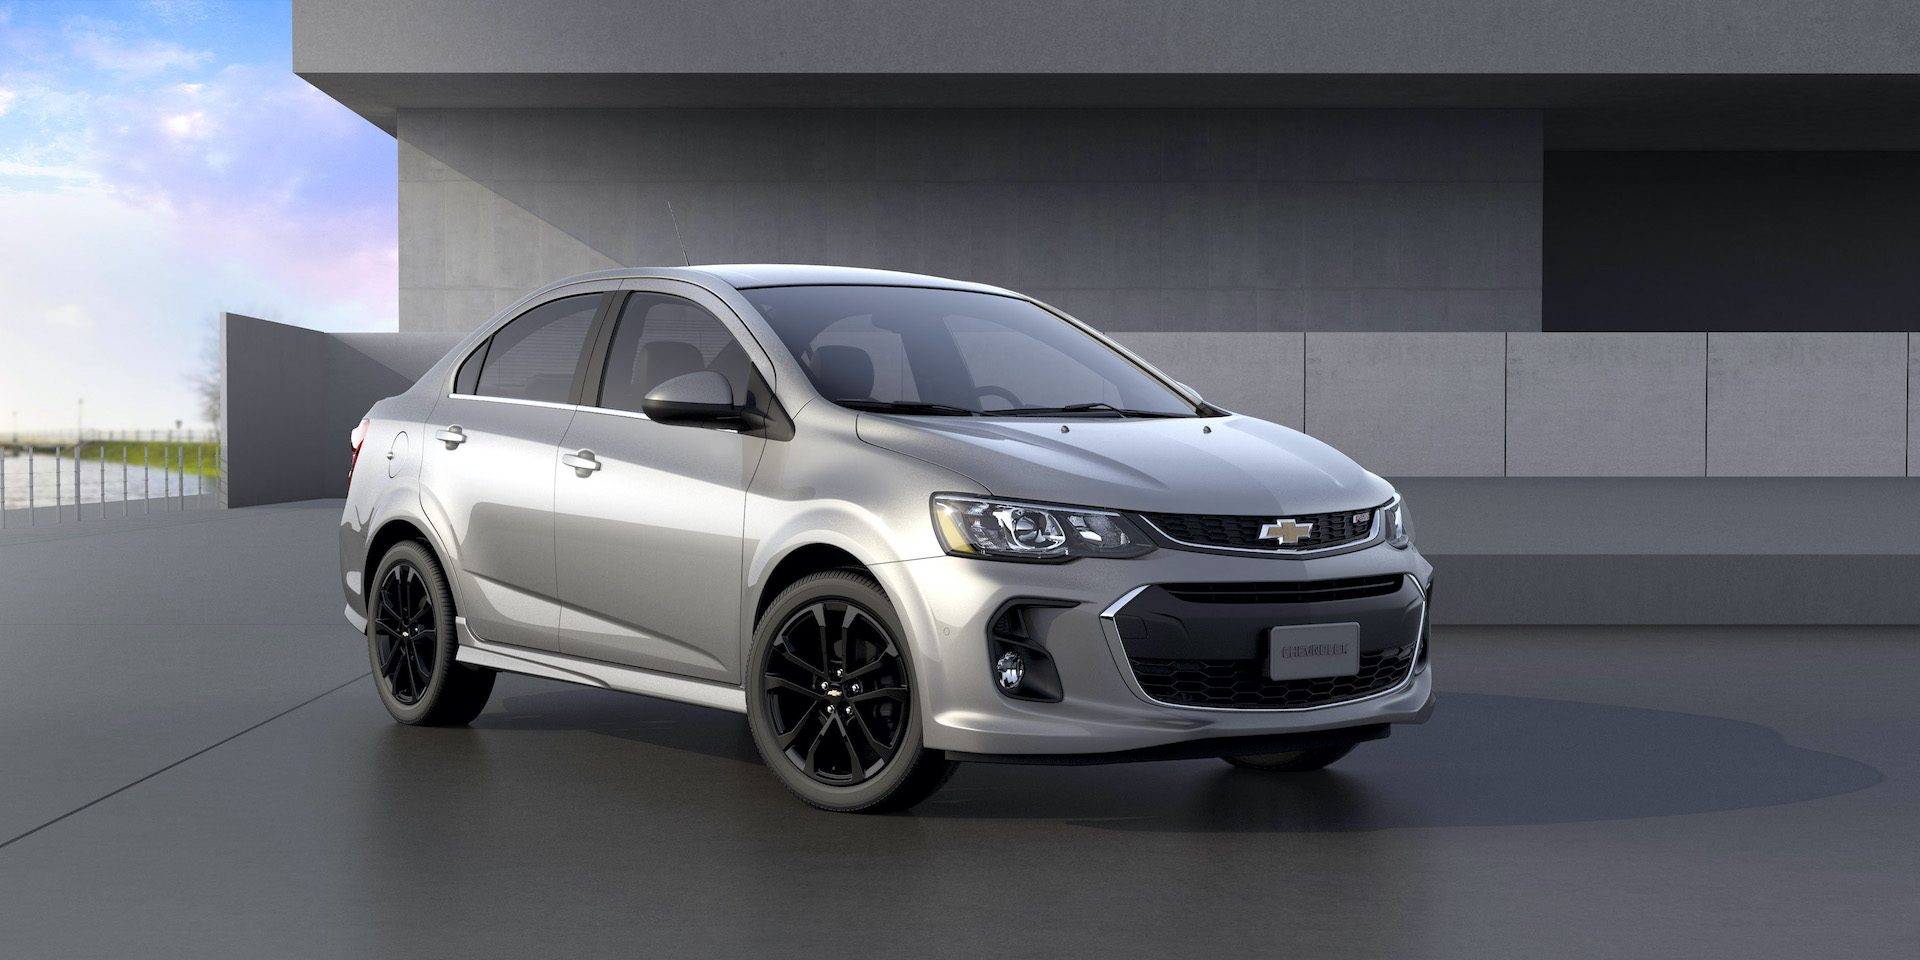 2020 Chevy Sonic Review.2020 Chevrolet Sonic Chevy Review Ratings Specs Prices